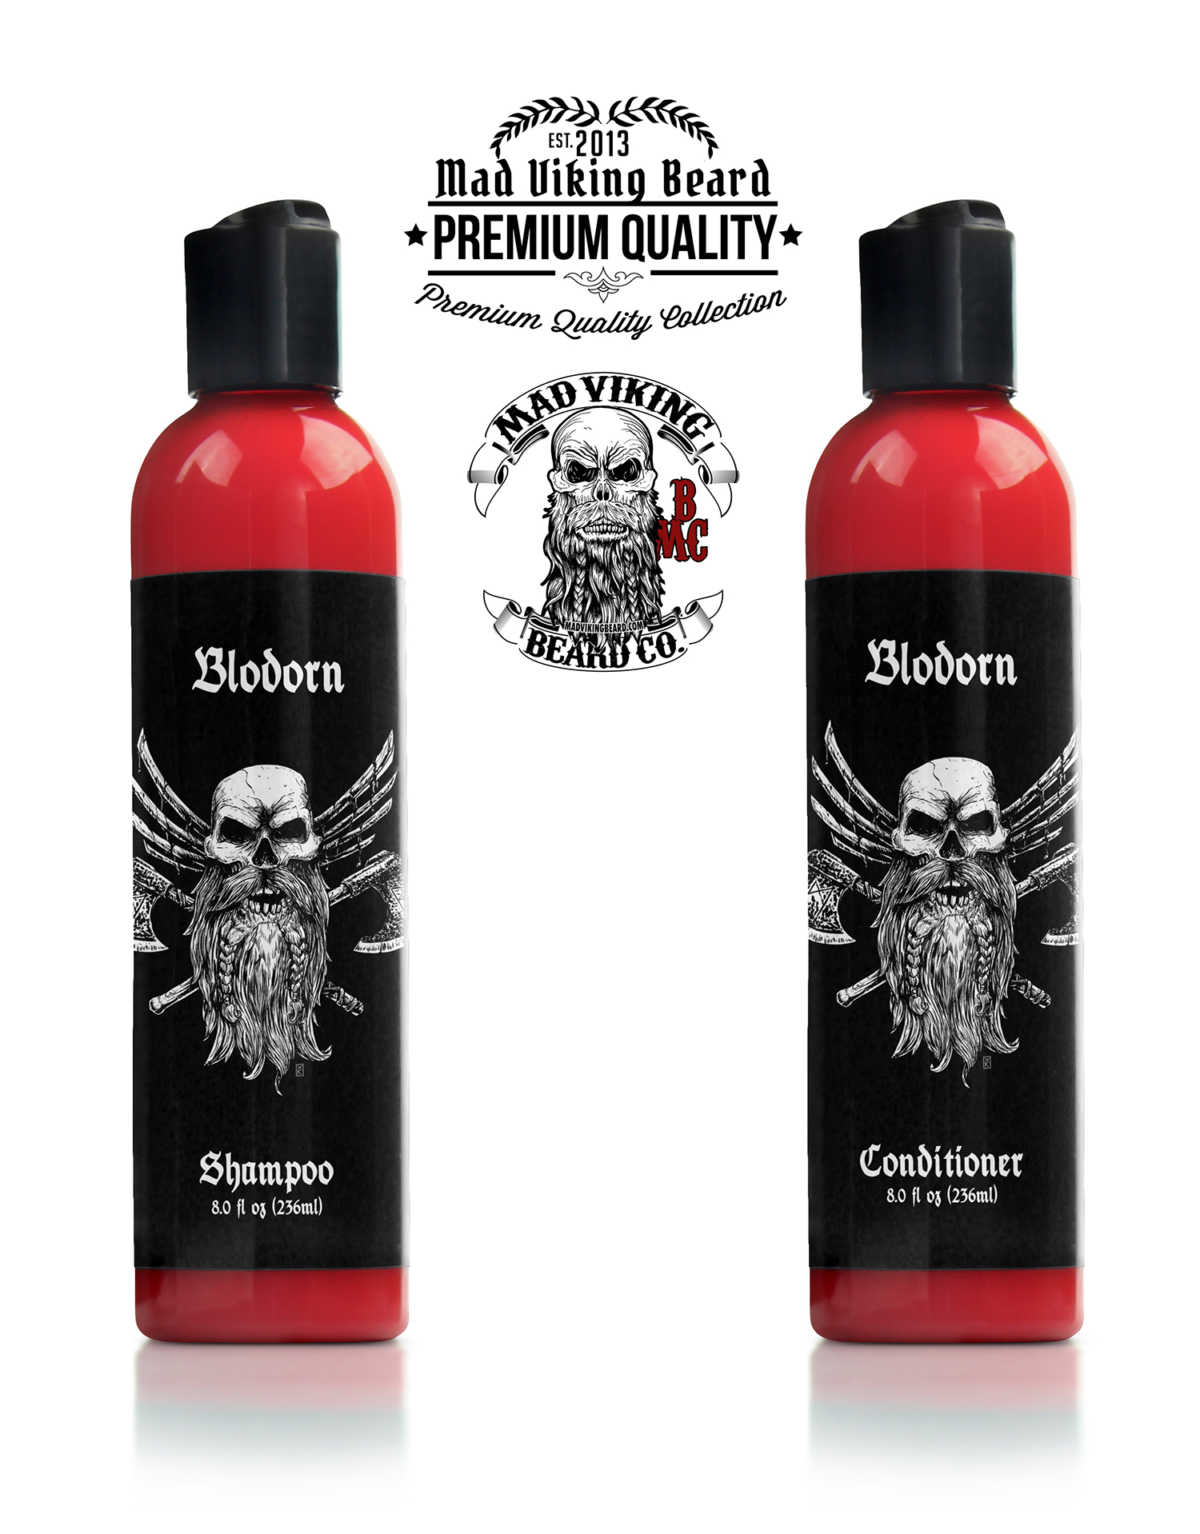 Mad Viking Blodorn Shampoo & Conditioner